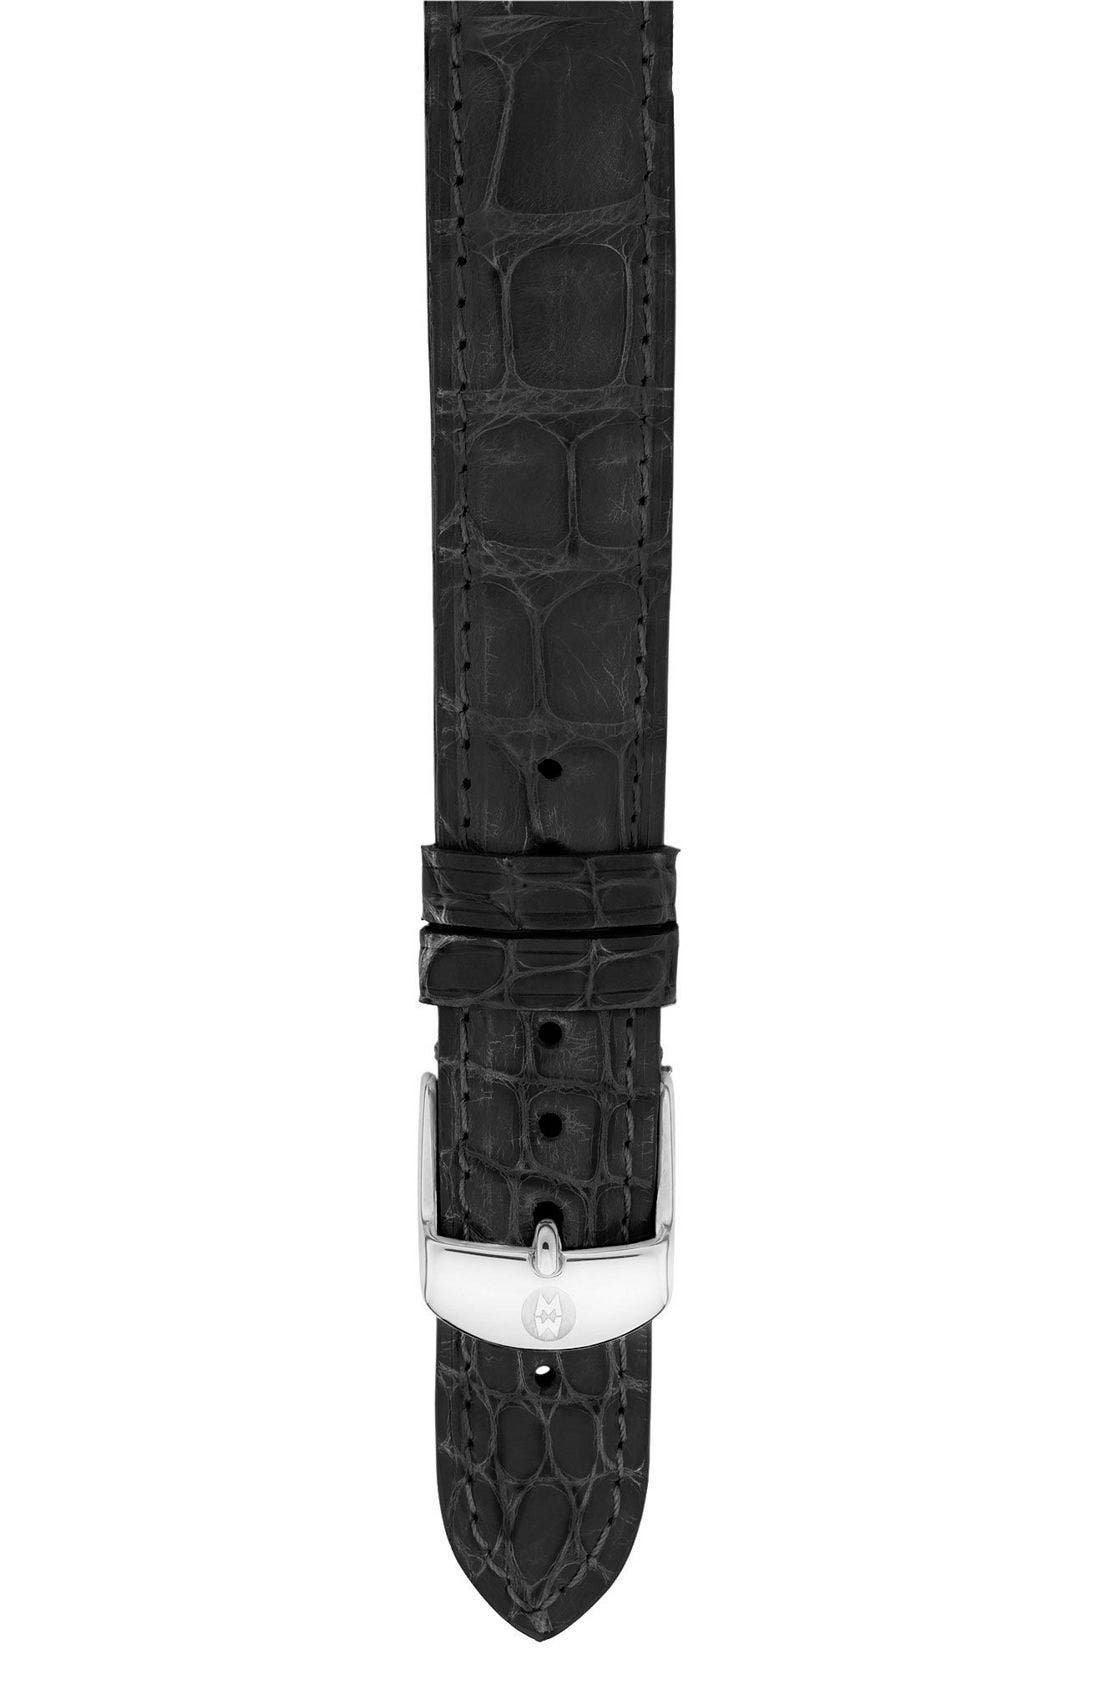 Alternate Image 1 Selected - MICHELE 'Deco 16 Diamond' Watch Case & 16mm Black Alligator Strap